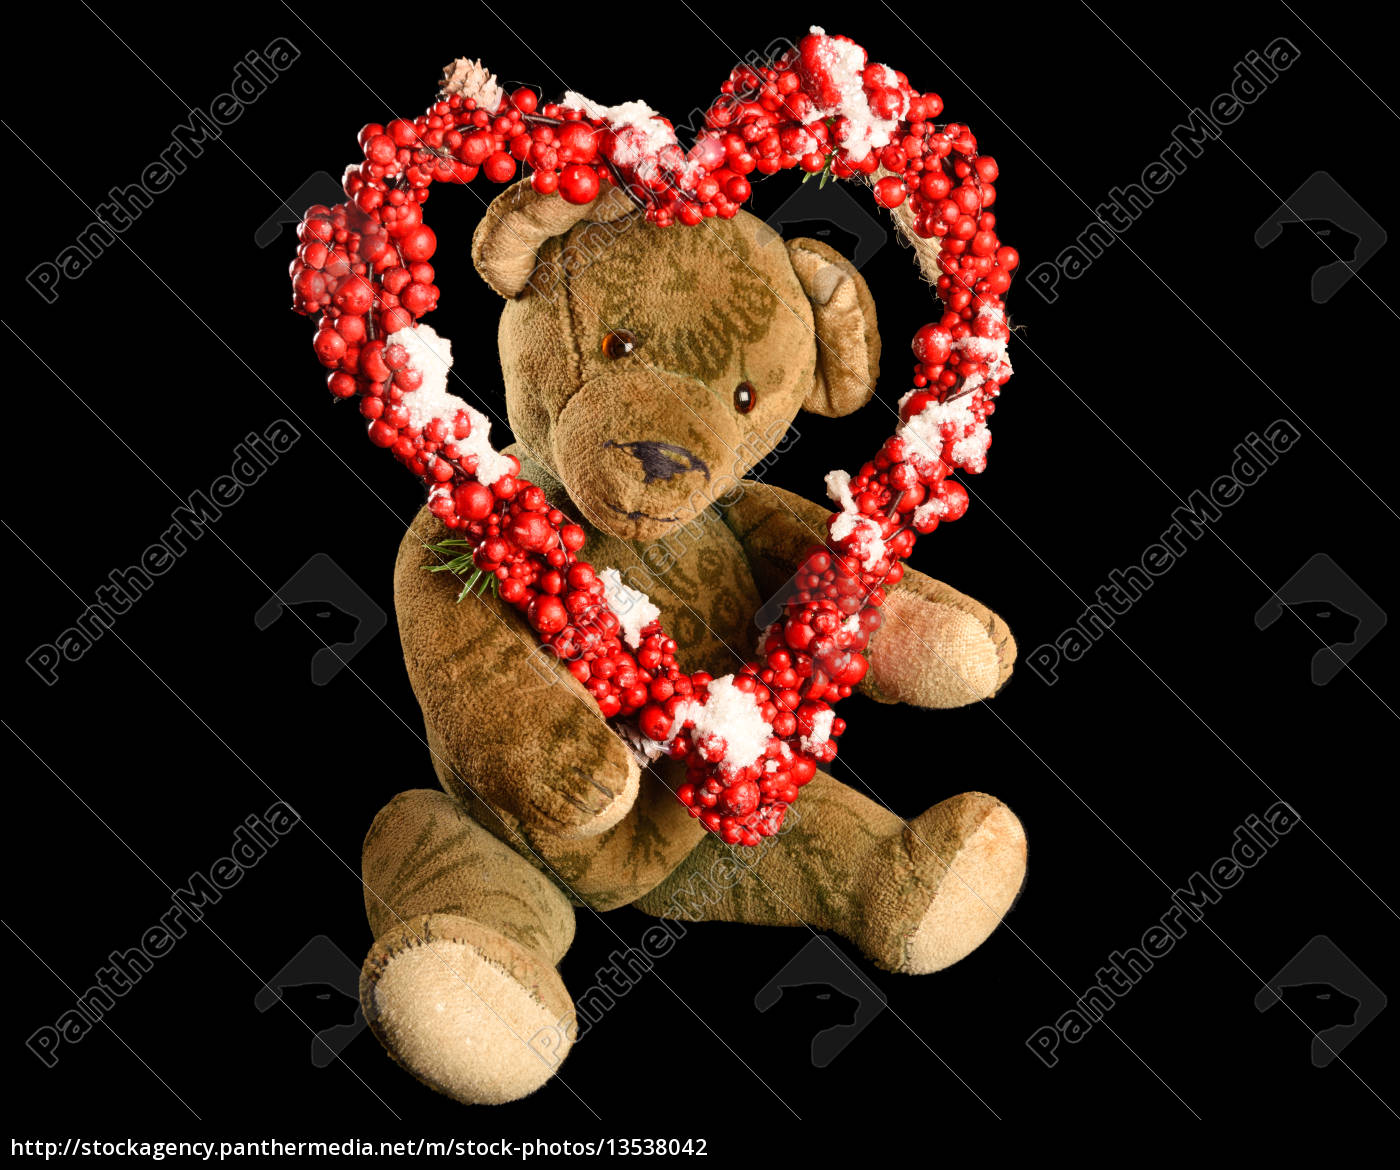 5c358e92 Stock image 13538042 - teddy bear with heart shaped wreath of red berries  as a